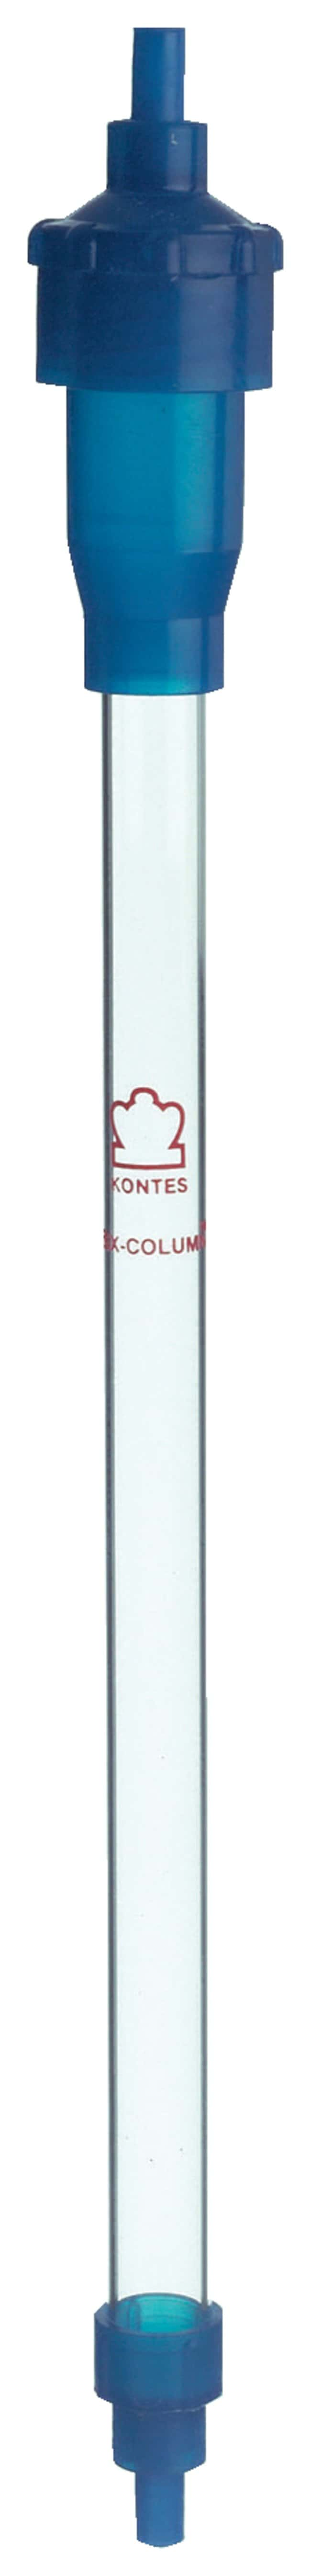 DWK Life Sciences Kimble™ Kontes™ FlexColumn™ Economy Columns 15mm ID; 150mm length; 27mL volume; 5/Cs. DWK Life Sciences Kimble™ Kontes™ FlexColumn™ Economy Columns